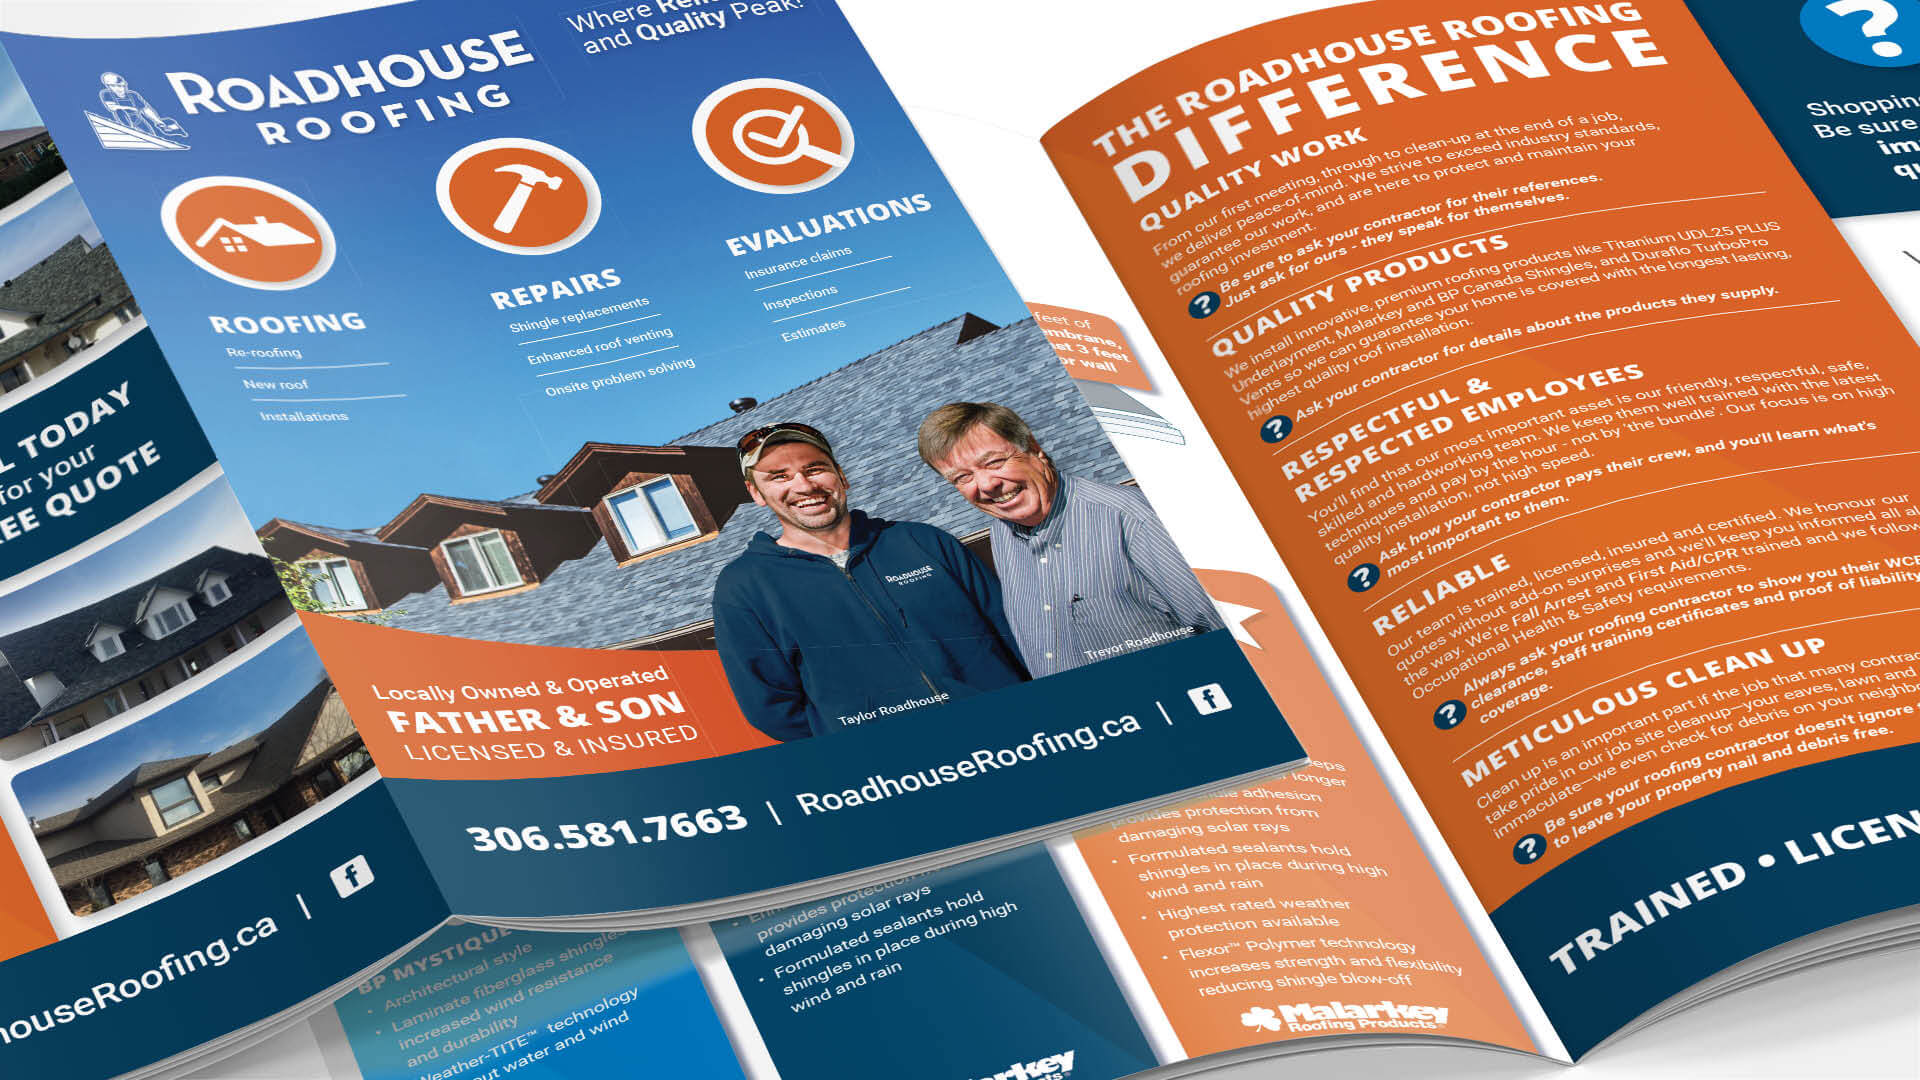 Roadhouse Roofing, Print, Roadhouse Roofing Brochure, Portfolio Image